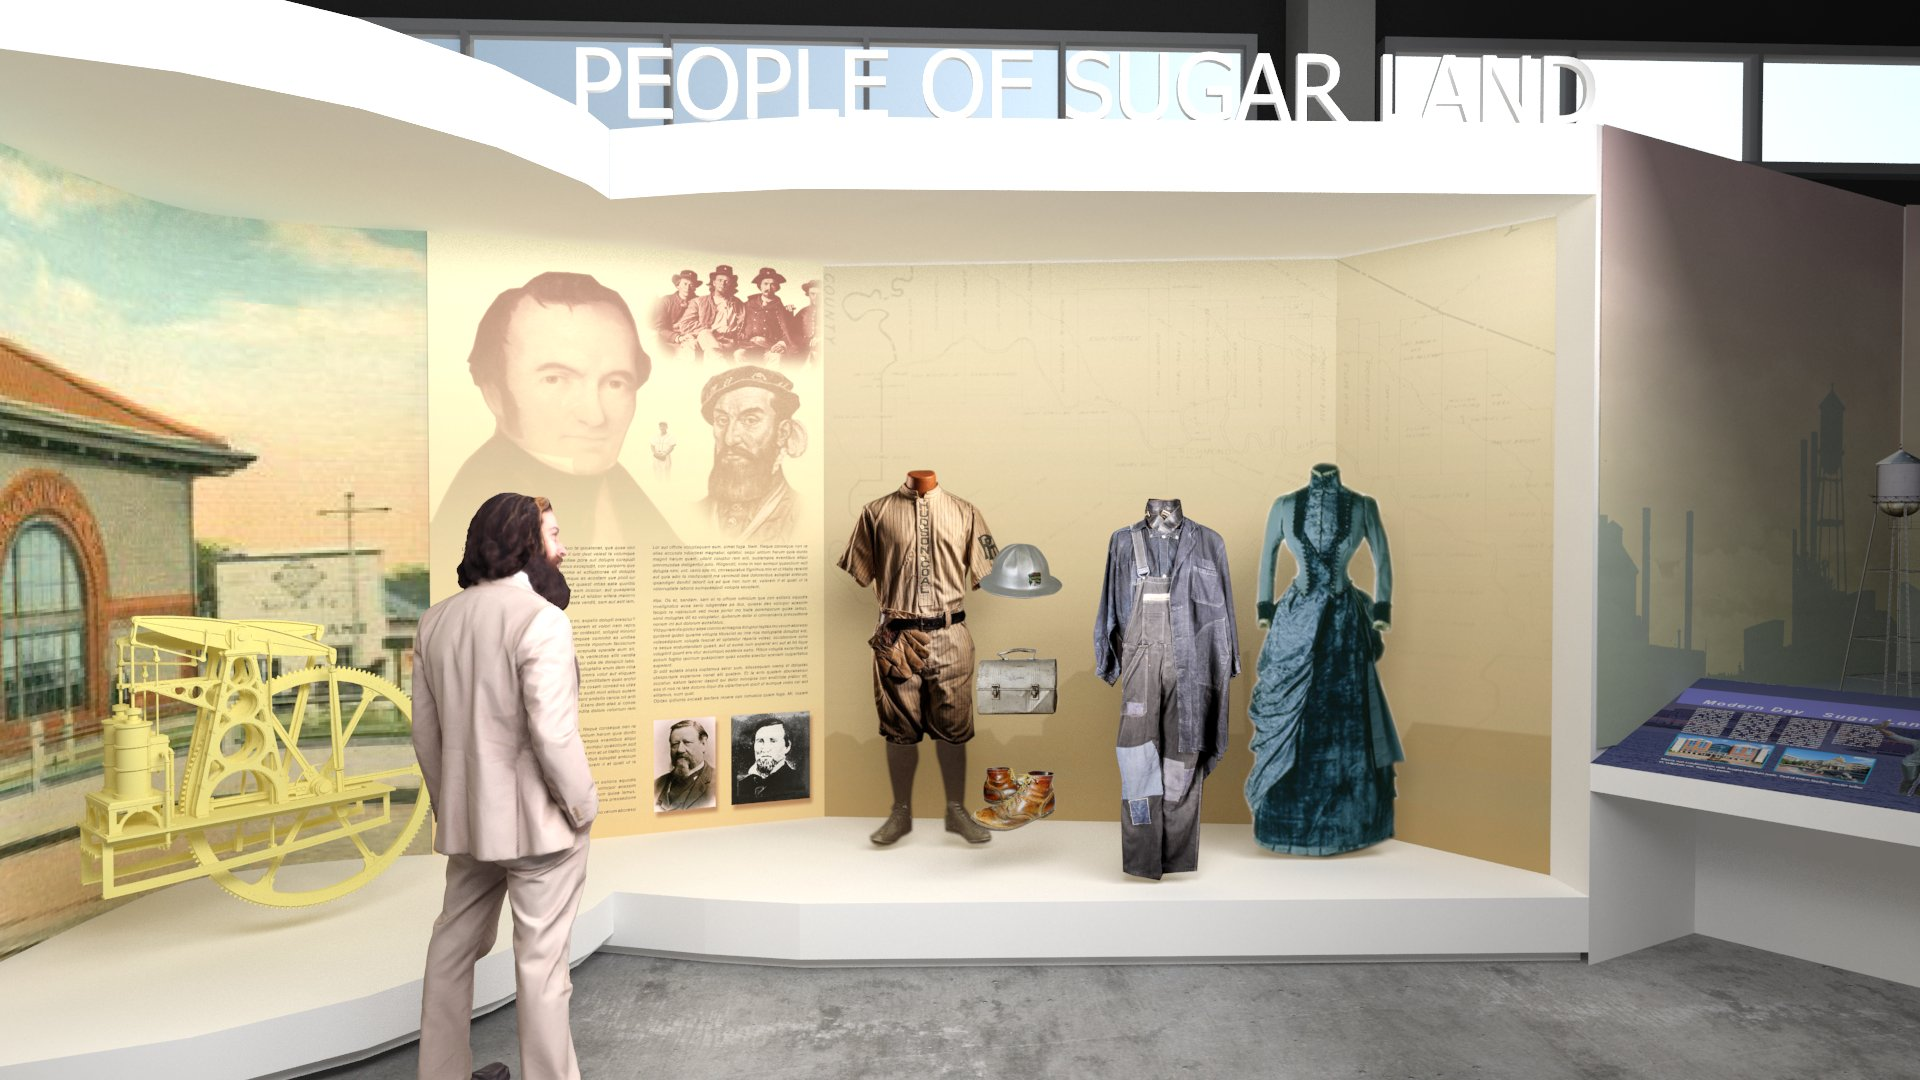 Illustration of the Sugar Land Heritage Foundation's People of Sugar Land Exhibit